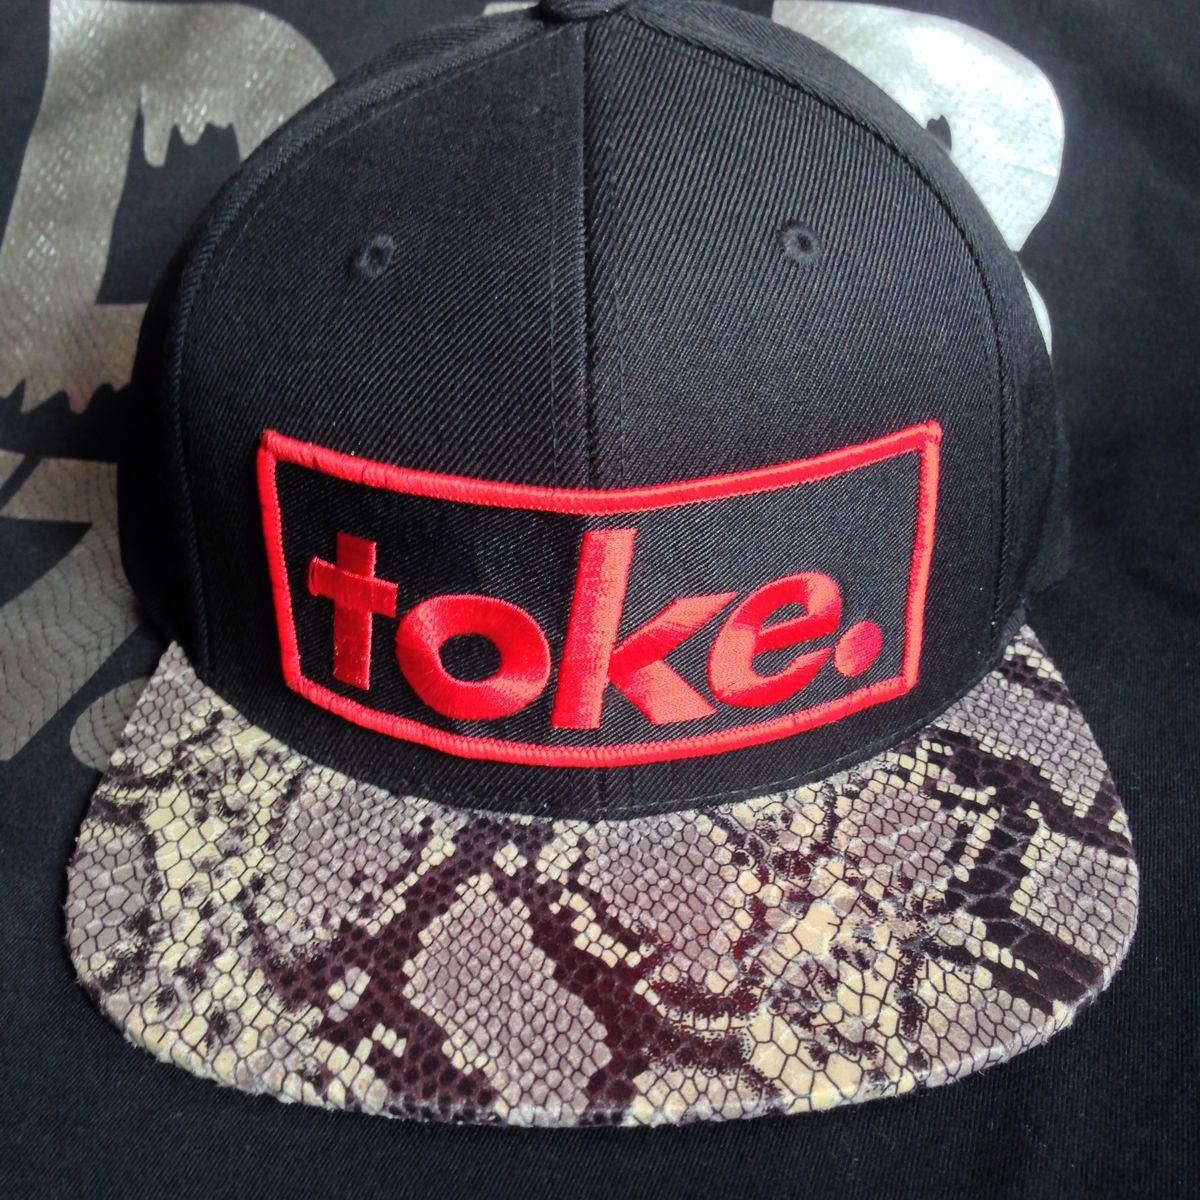 Toke - Snake - Snapback - product images  of